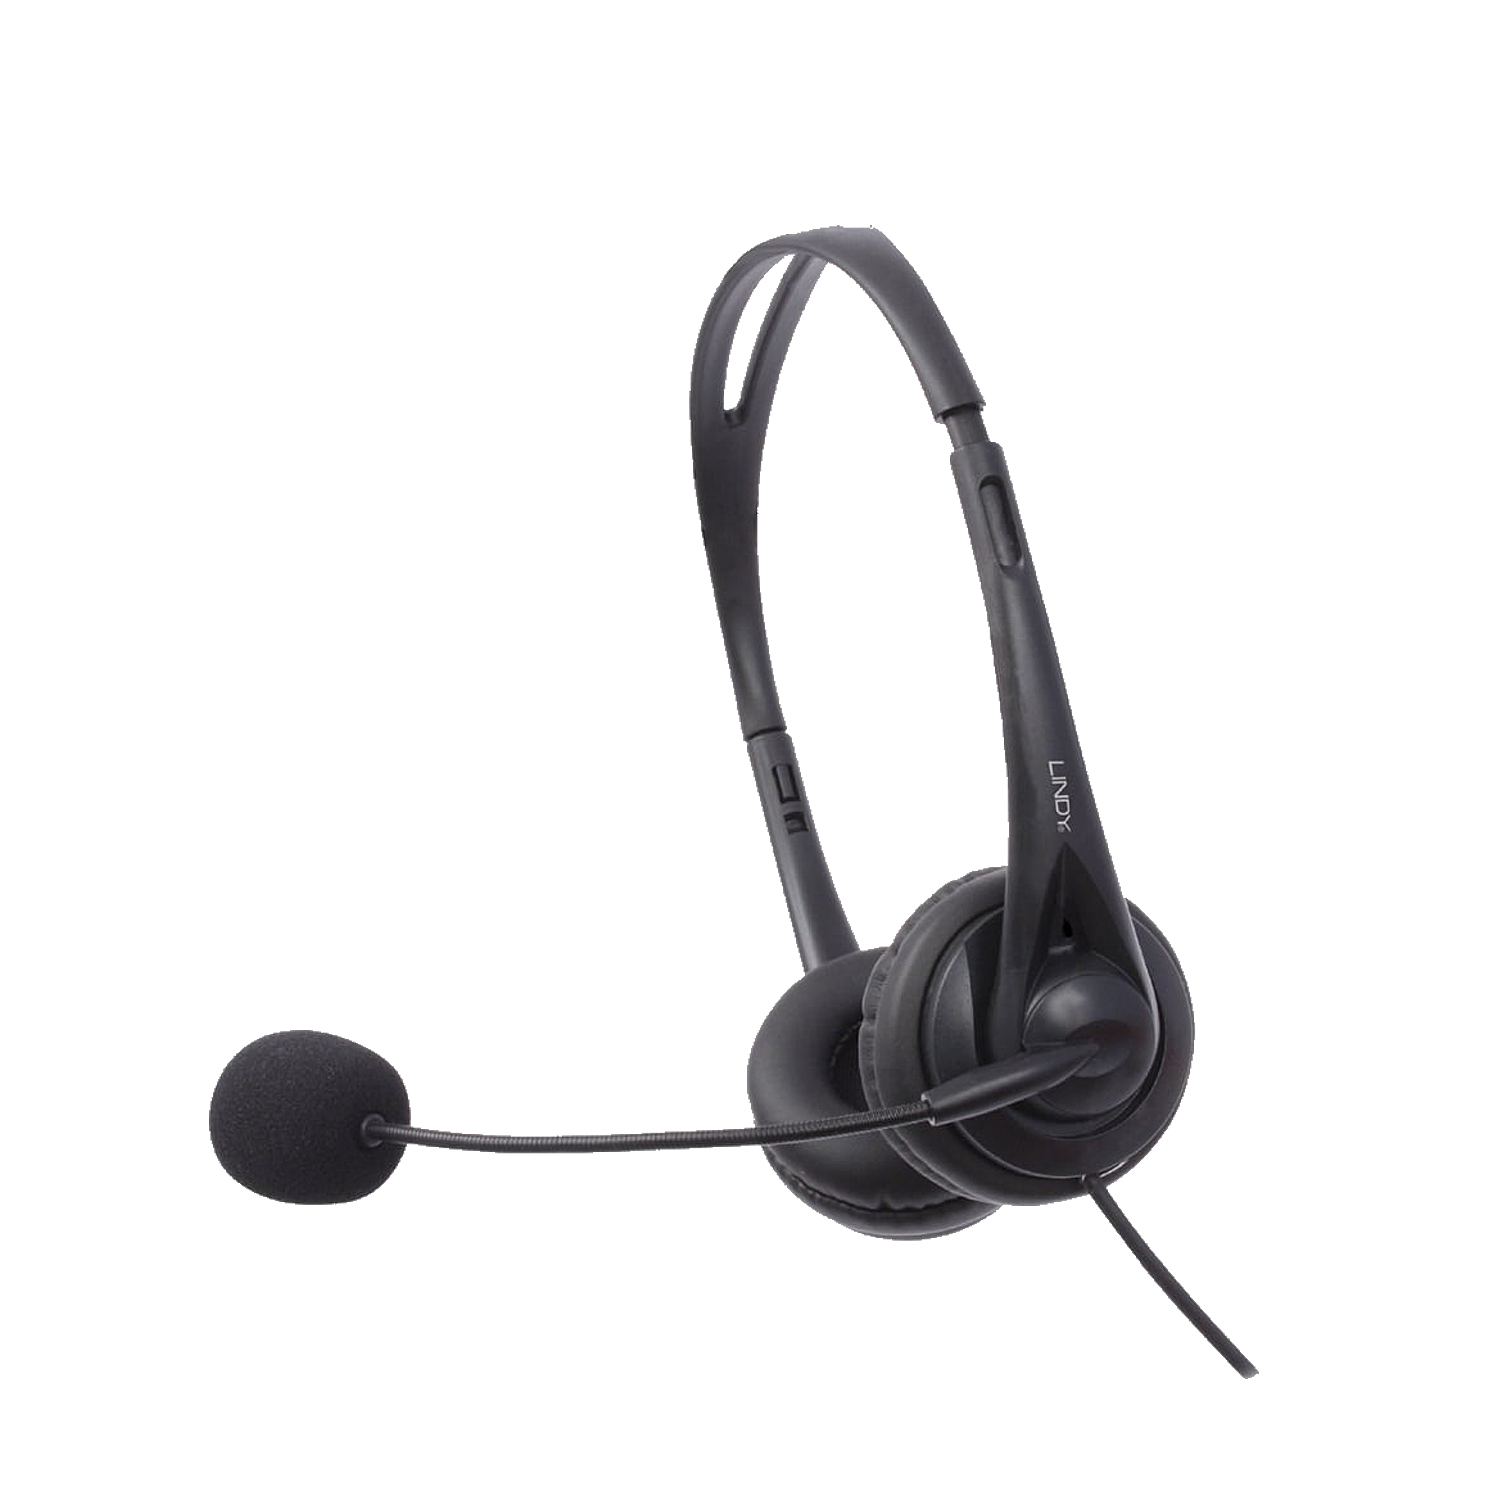 Lindy 42870 headphones/headset Head-band Black